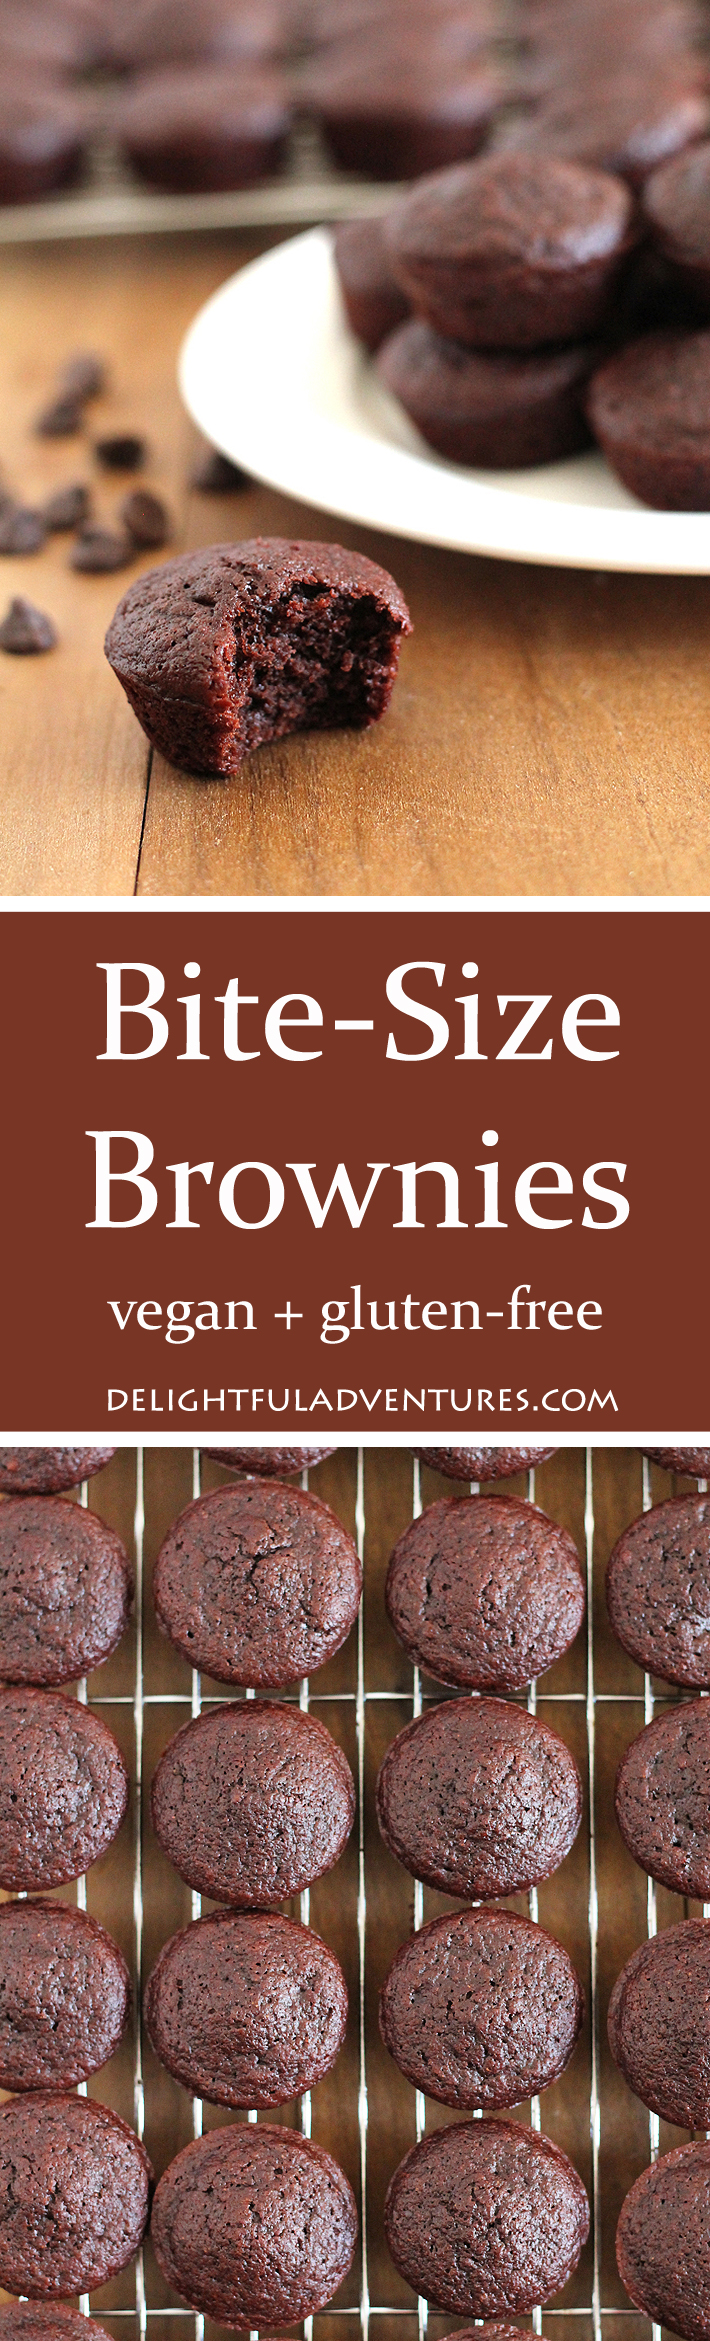 What do you do when you're craving something sweet but you just want a little treat? You make these delicious, vegan gluten free bite-size brownies!